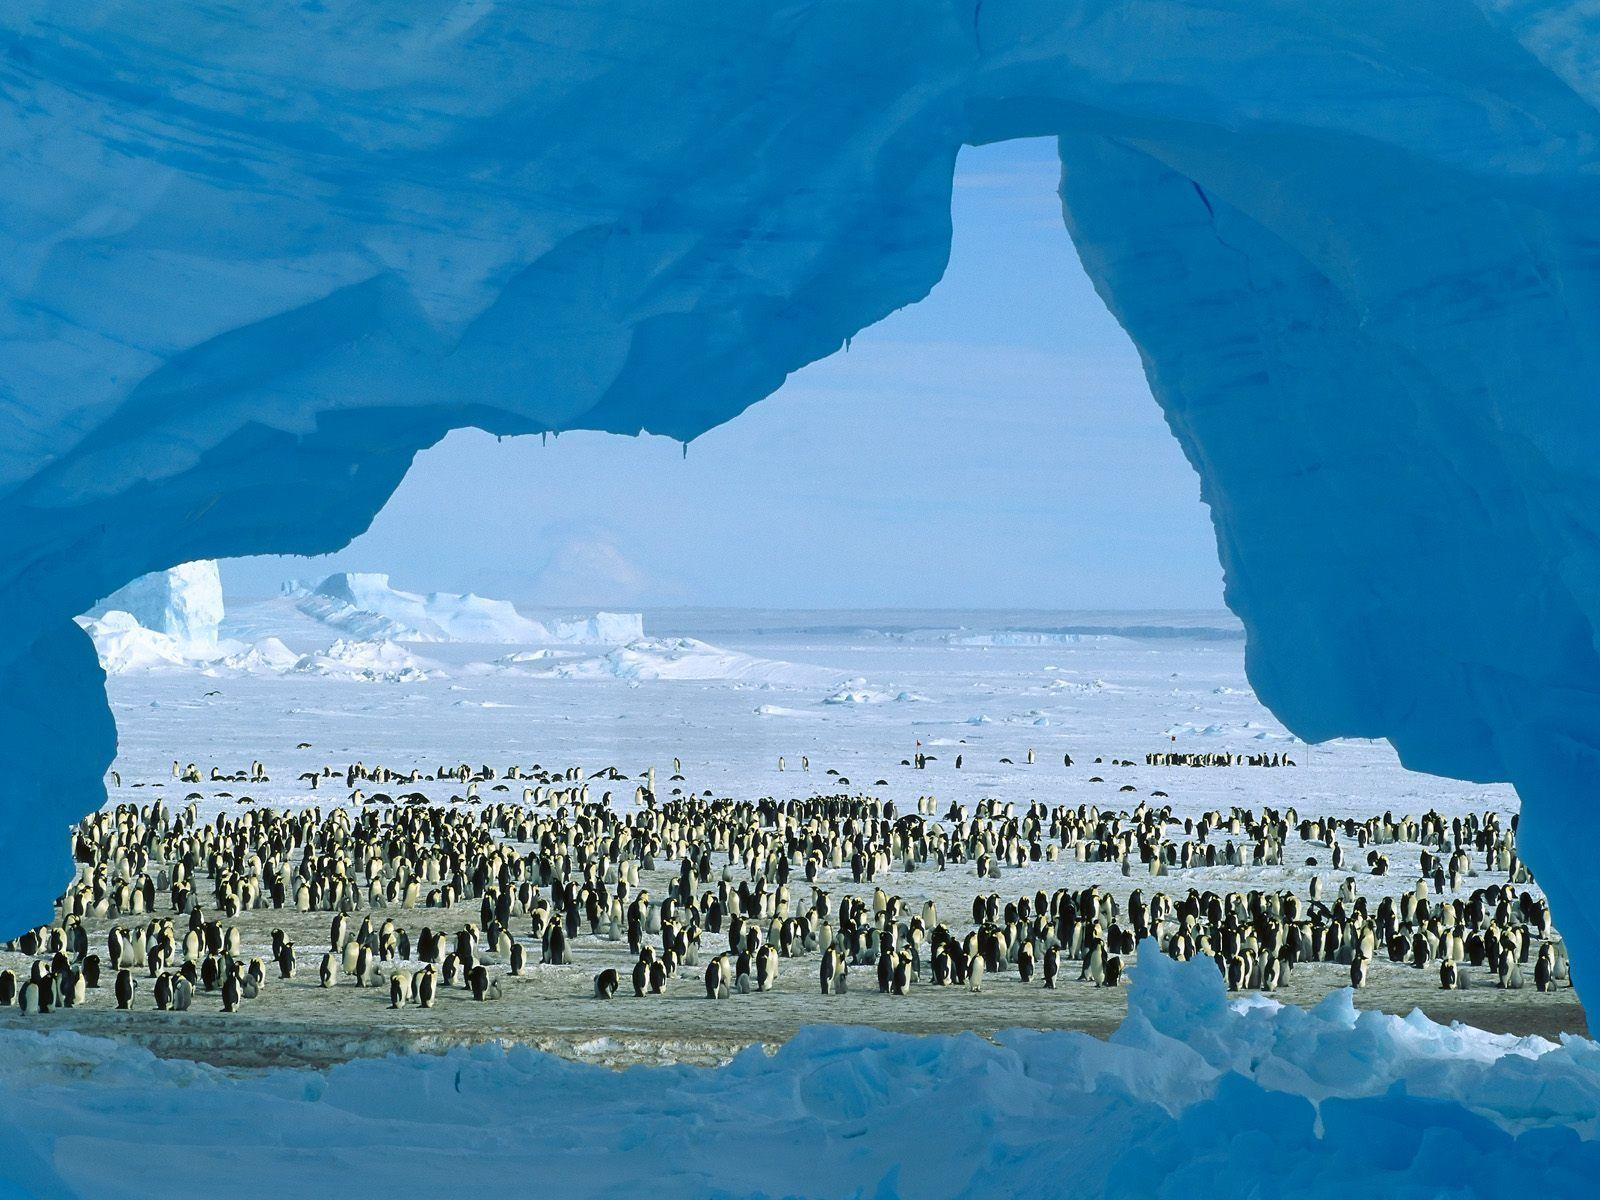 Free HQ Atka Bay Weddell Sea Antarctica Wallpapers